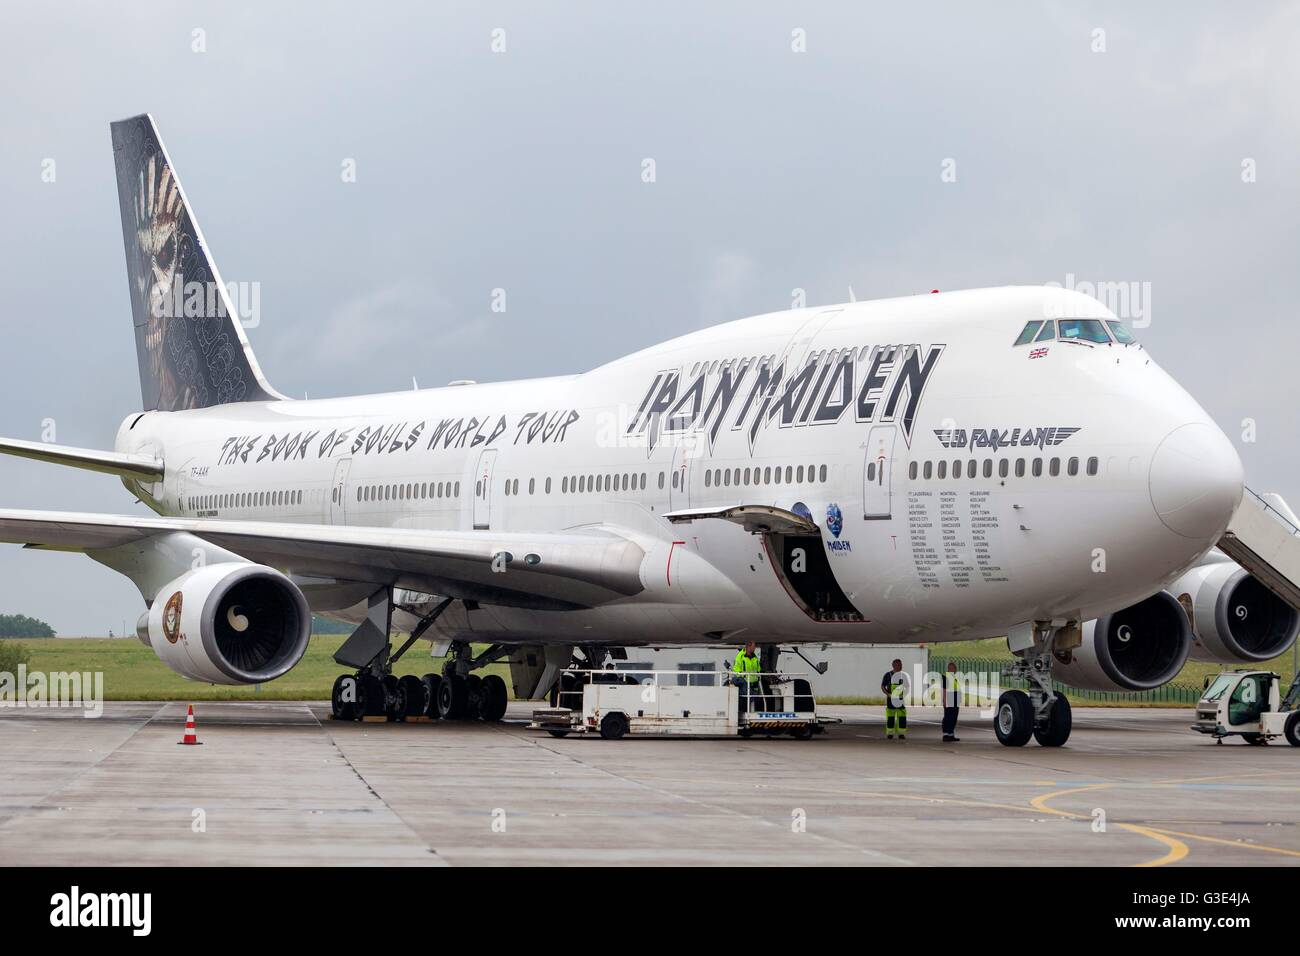 Opening Of The Ila Berlin Air Show Boeing 747 Iron Maiden Berlin